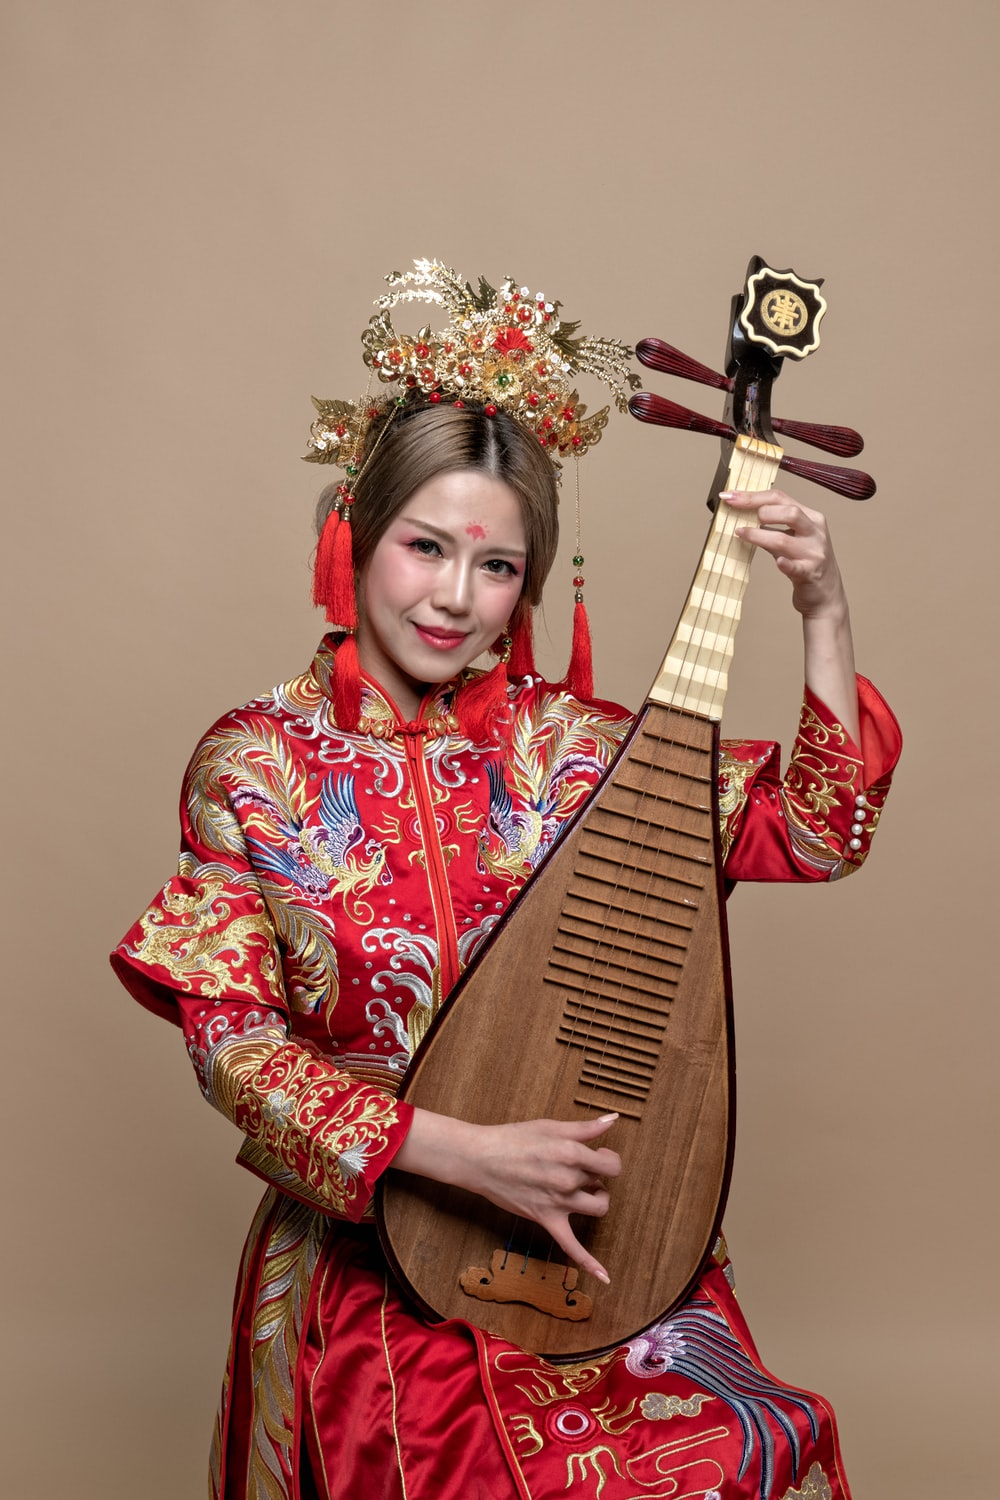 woman holding string instrument while smiling